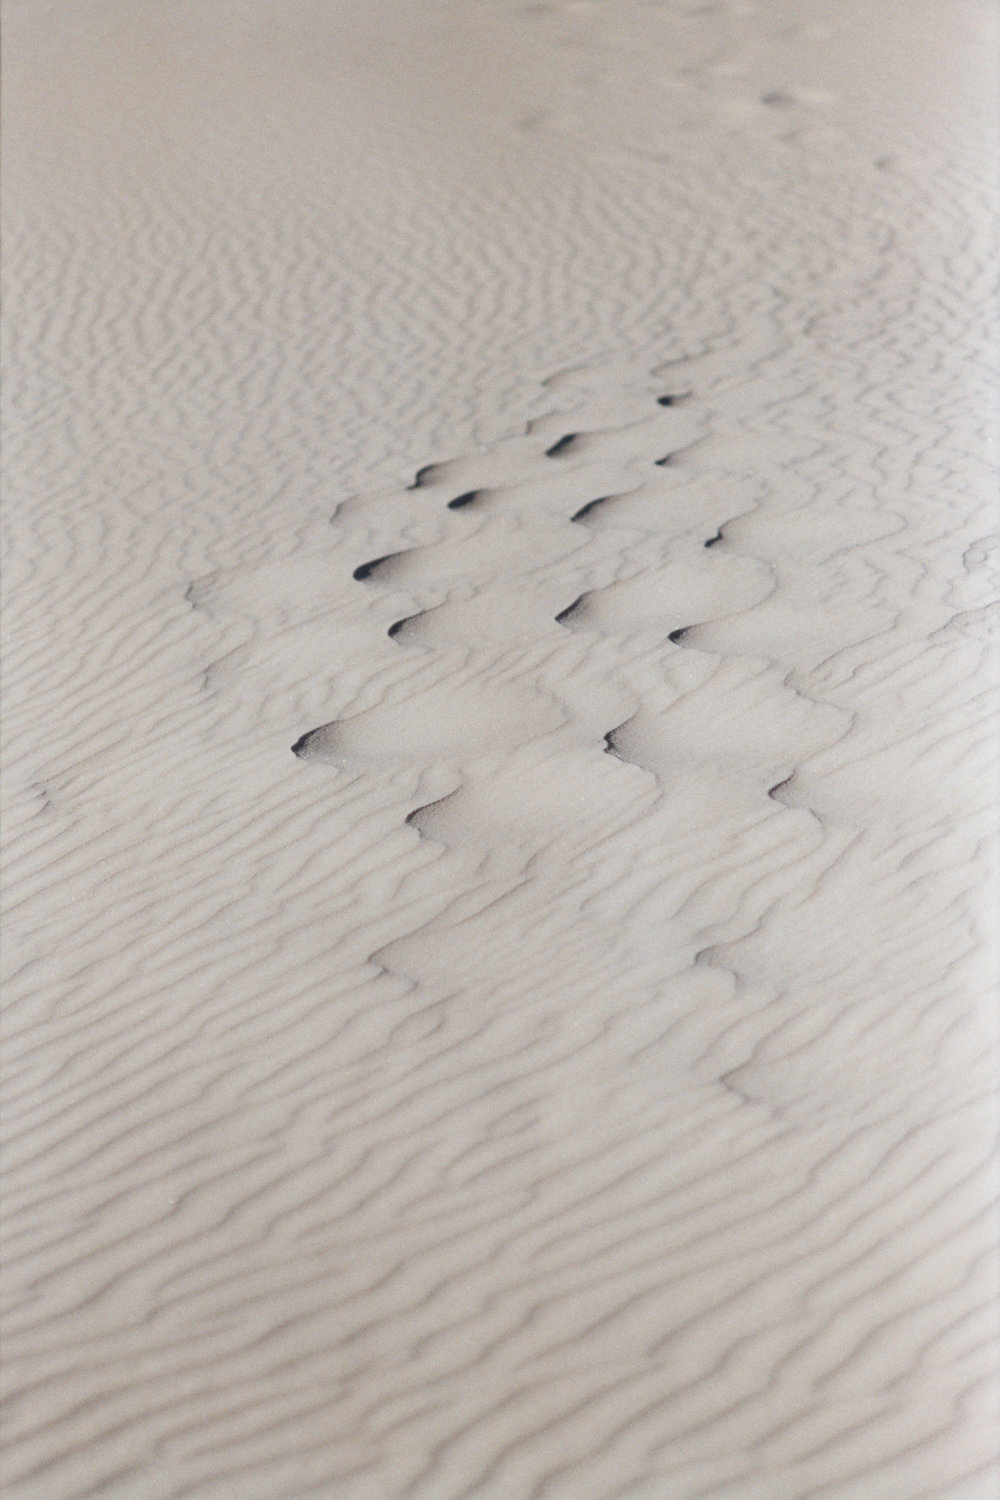 THE SAND IS A FORCE TO RECKON WITH - SAND OMINOUS, FOREBODING CREATURES OF STONE IMBIBED BY THE HAUNTING DELIBERATION OF TIME, AND WAVES. WAVES CRASH. SAND DUNES. AND THE STING WILL BE ONE YOU WON'T FORGET IN A DESERT STORM.  -